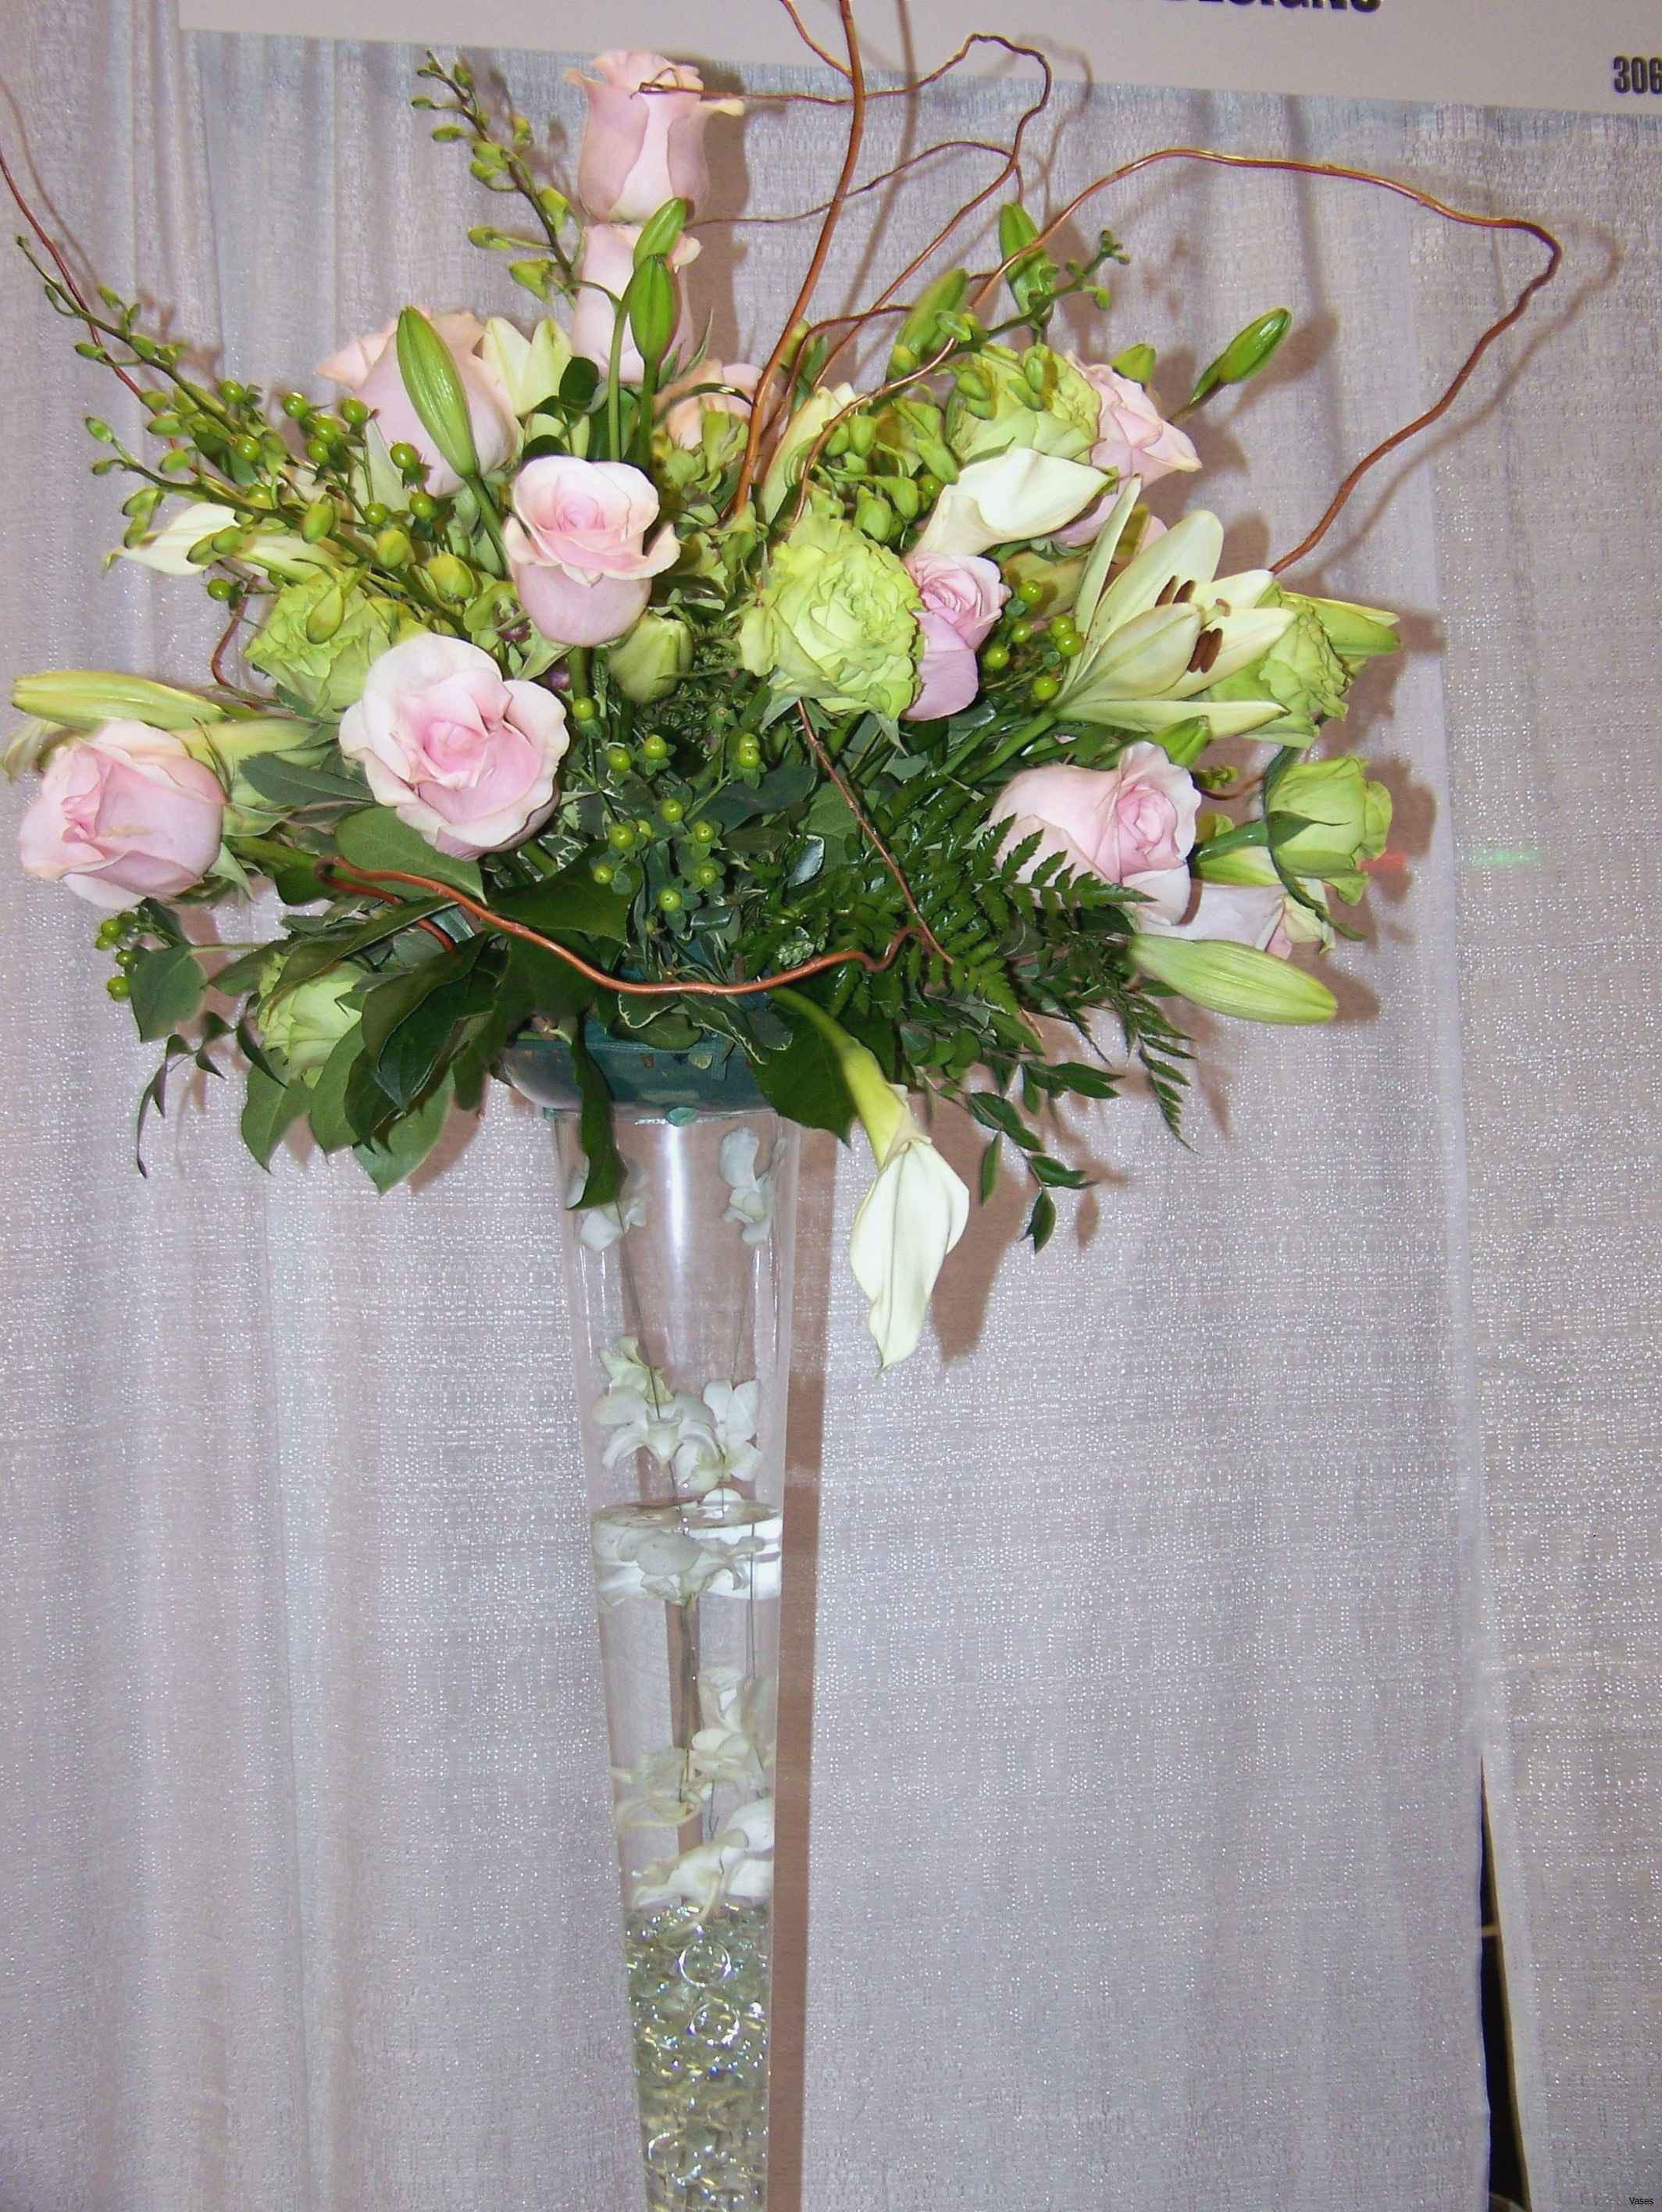 silver vase flower arrangements of elegant fall wedding bouquet wedding theme intended for h vases ideas for floral arrangements in i 0d design ideas design inspiration rustic fall